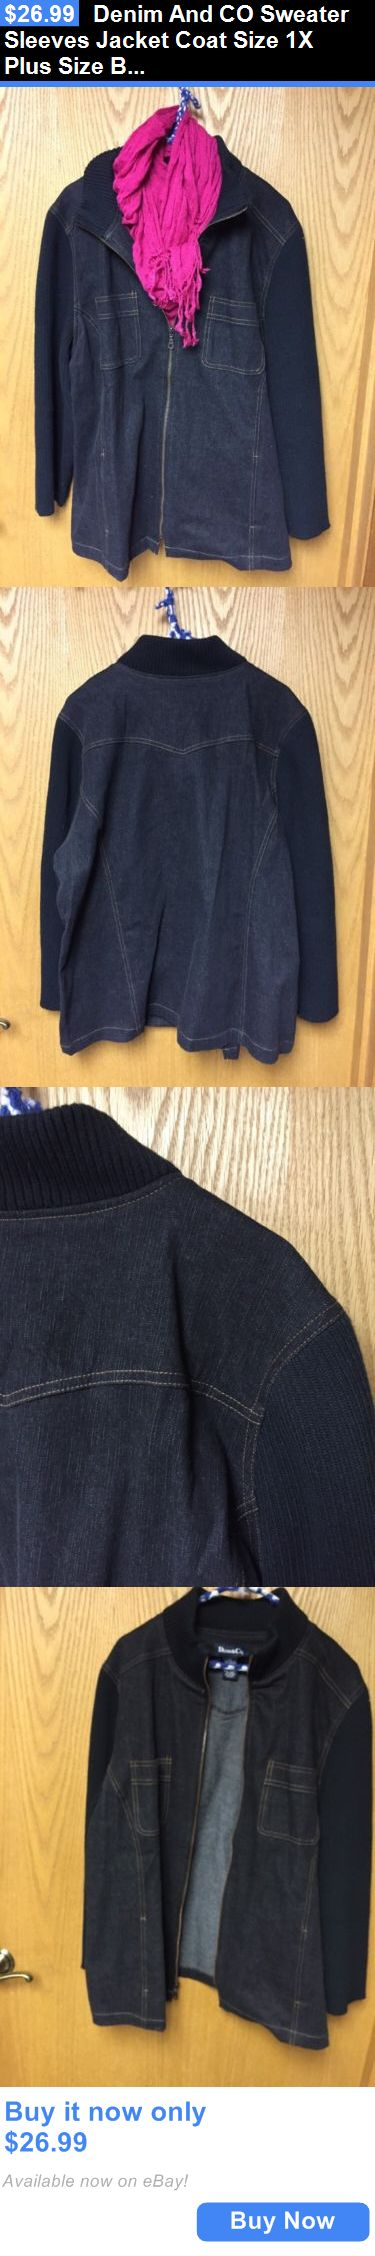 Women Coats And Jackets: Denim And Co Sweater Sleeves Jacket Coat Size 1X Plus Size Black Qvc Gift Womans BUY IT NOW ONLY: $26.99